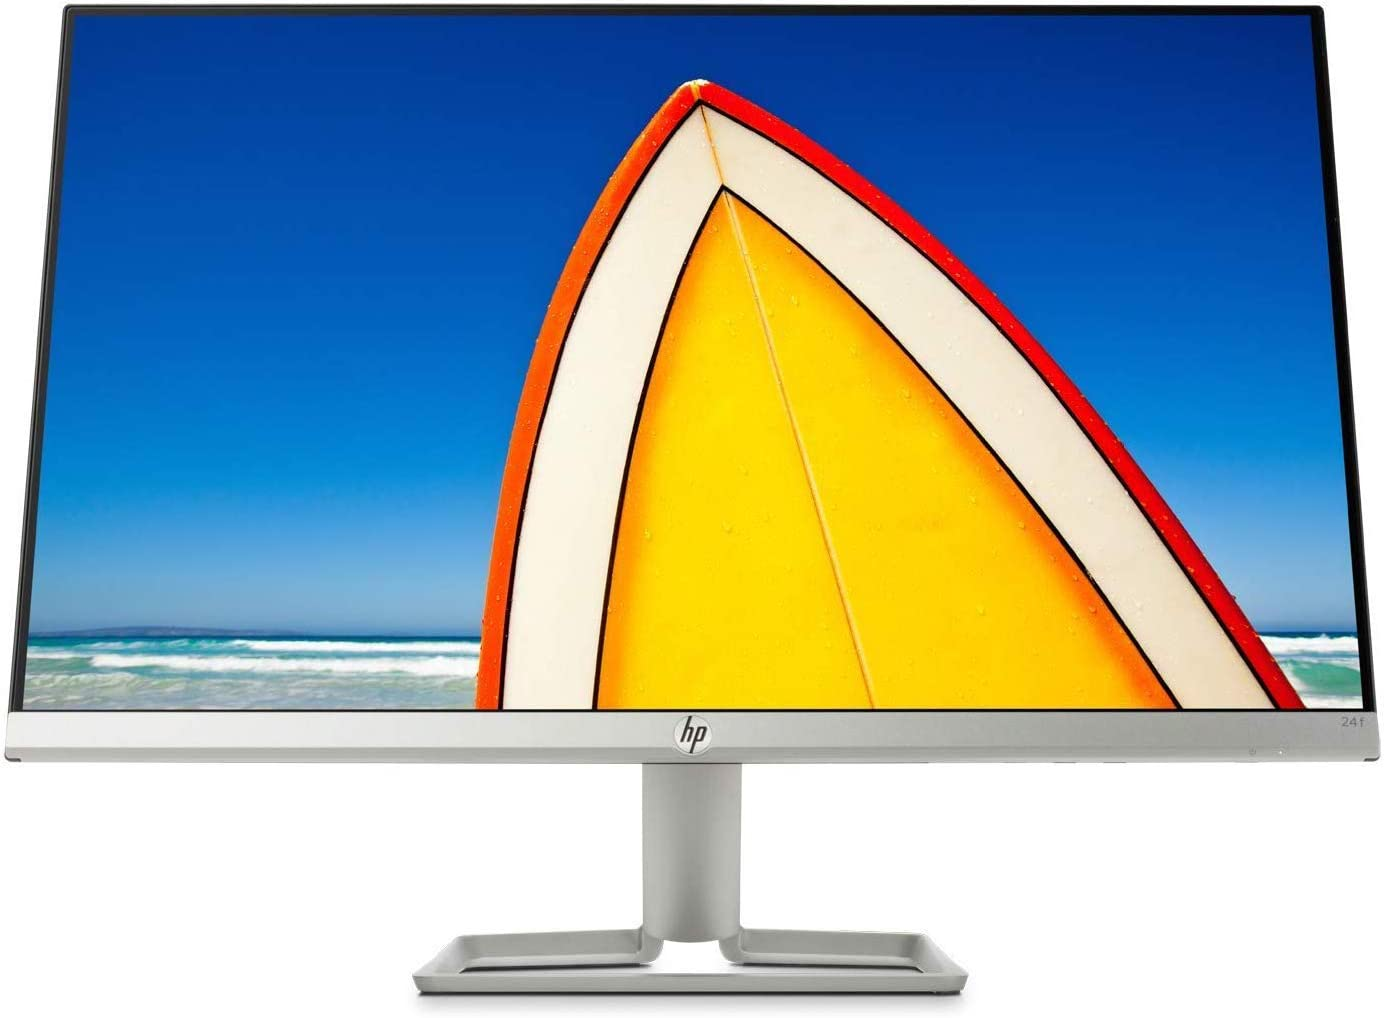 "HP 24f 23.8"" Ultra Slim Bezels IPS LED Display FHD FreeSync Monitor, HDMI VGA-Natural Silver"